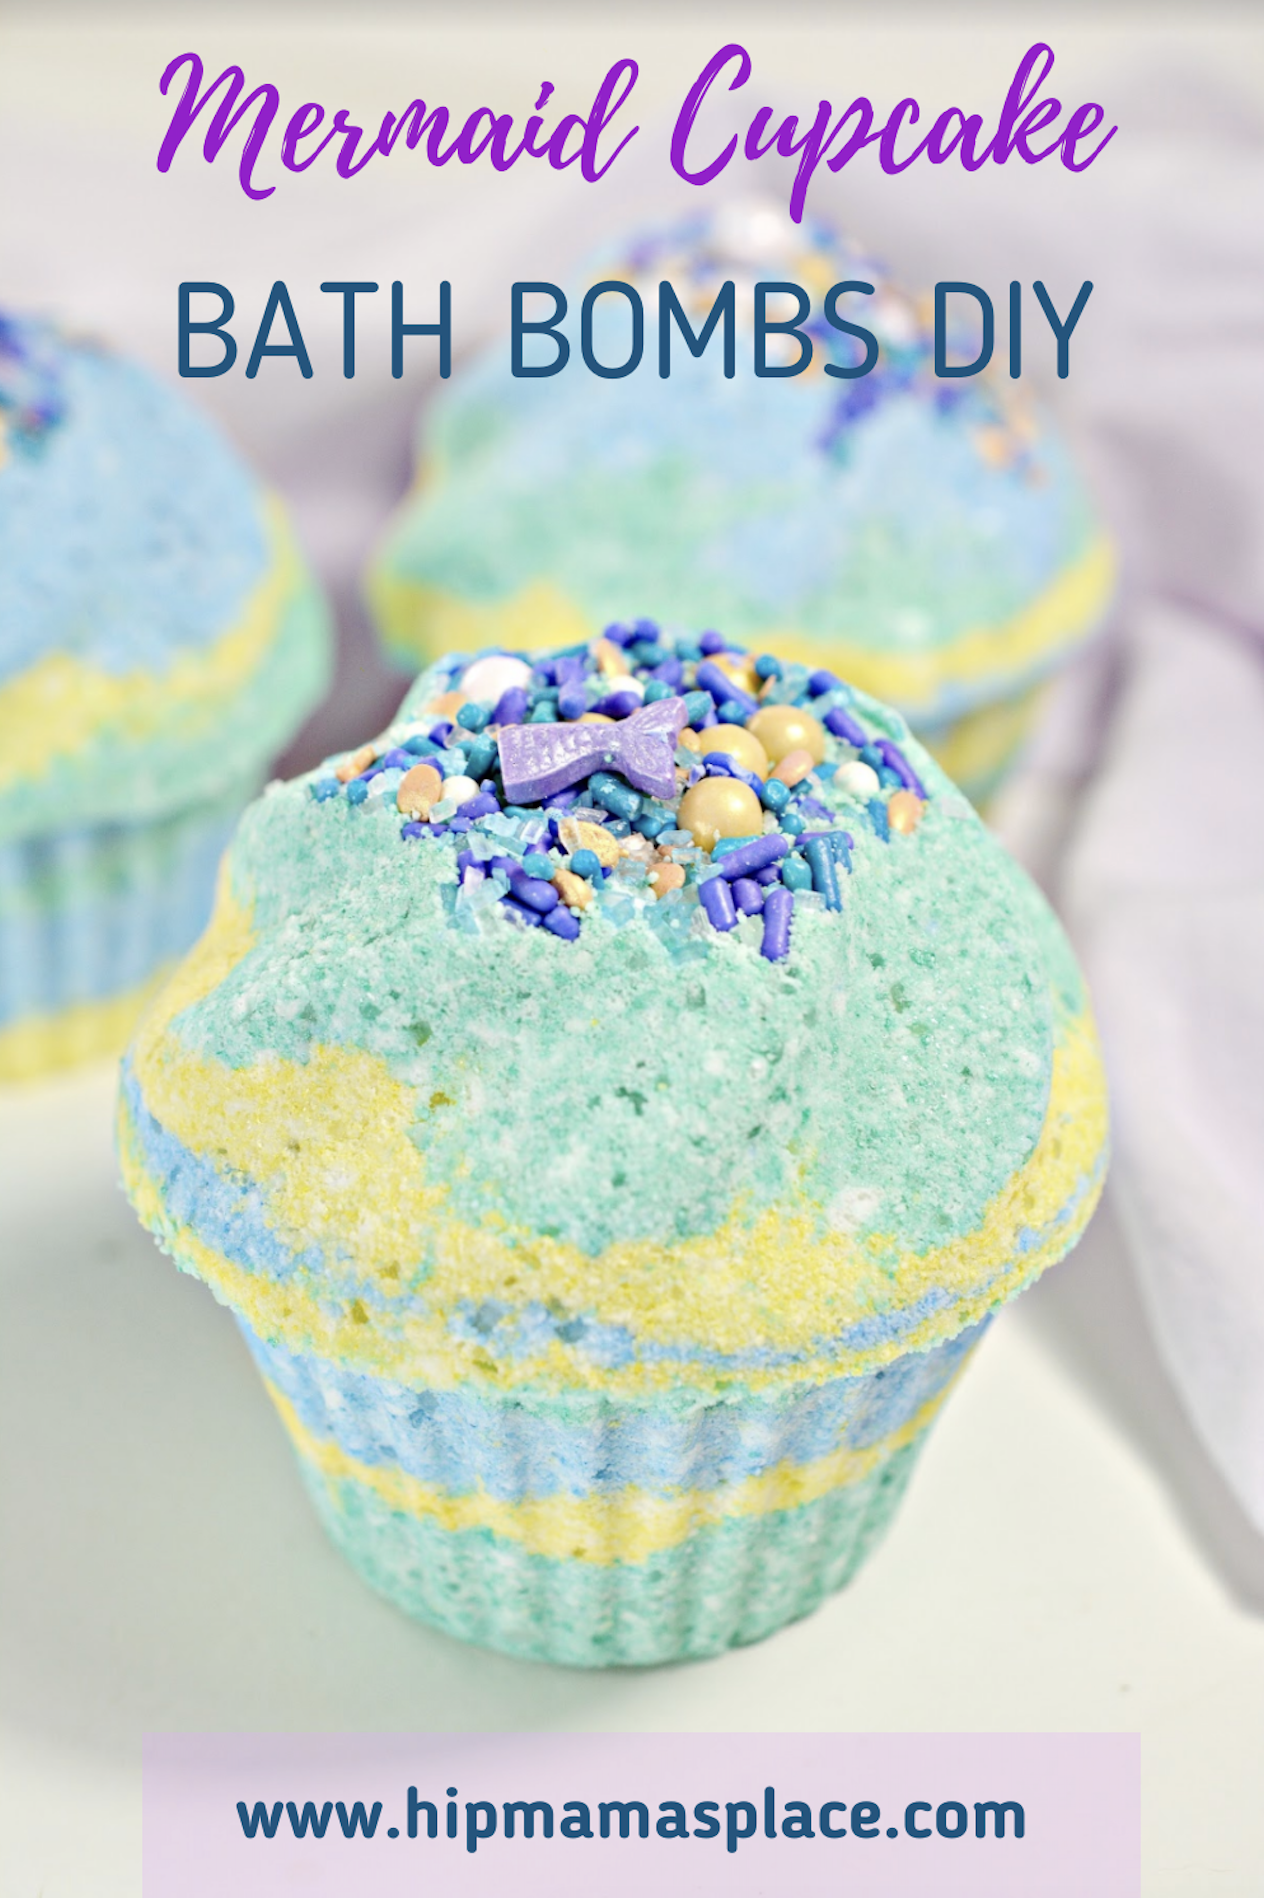 Make your next bath smell wonderful, fizzy and more relaxing with DIY bath bombs! Try my recipe for Mermaid Cupcake Bath Bombs DIY! #bathbombs #DIY #bathcare #selfcare #DIYbathbombs #homemade #homemadebathbombs #beauty #beautyrecipes #skincarerecipes #imadethis #beautybloggers #beautyinfluencer #crafty #craftymoms